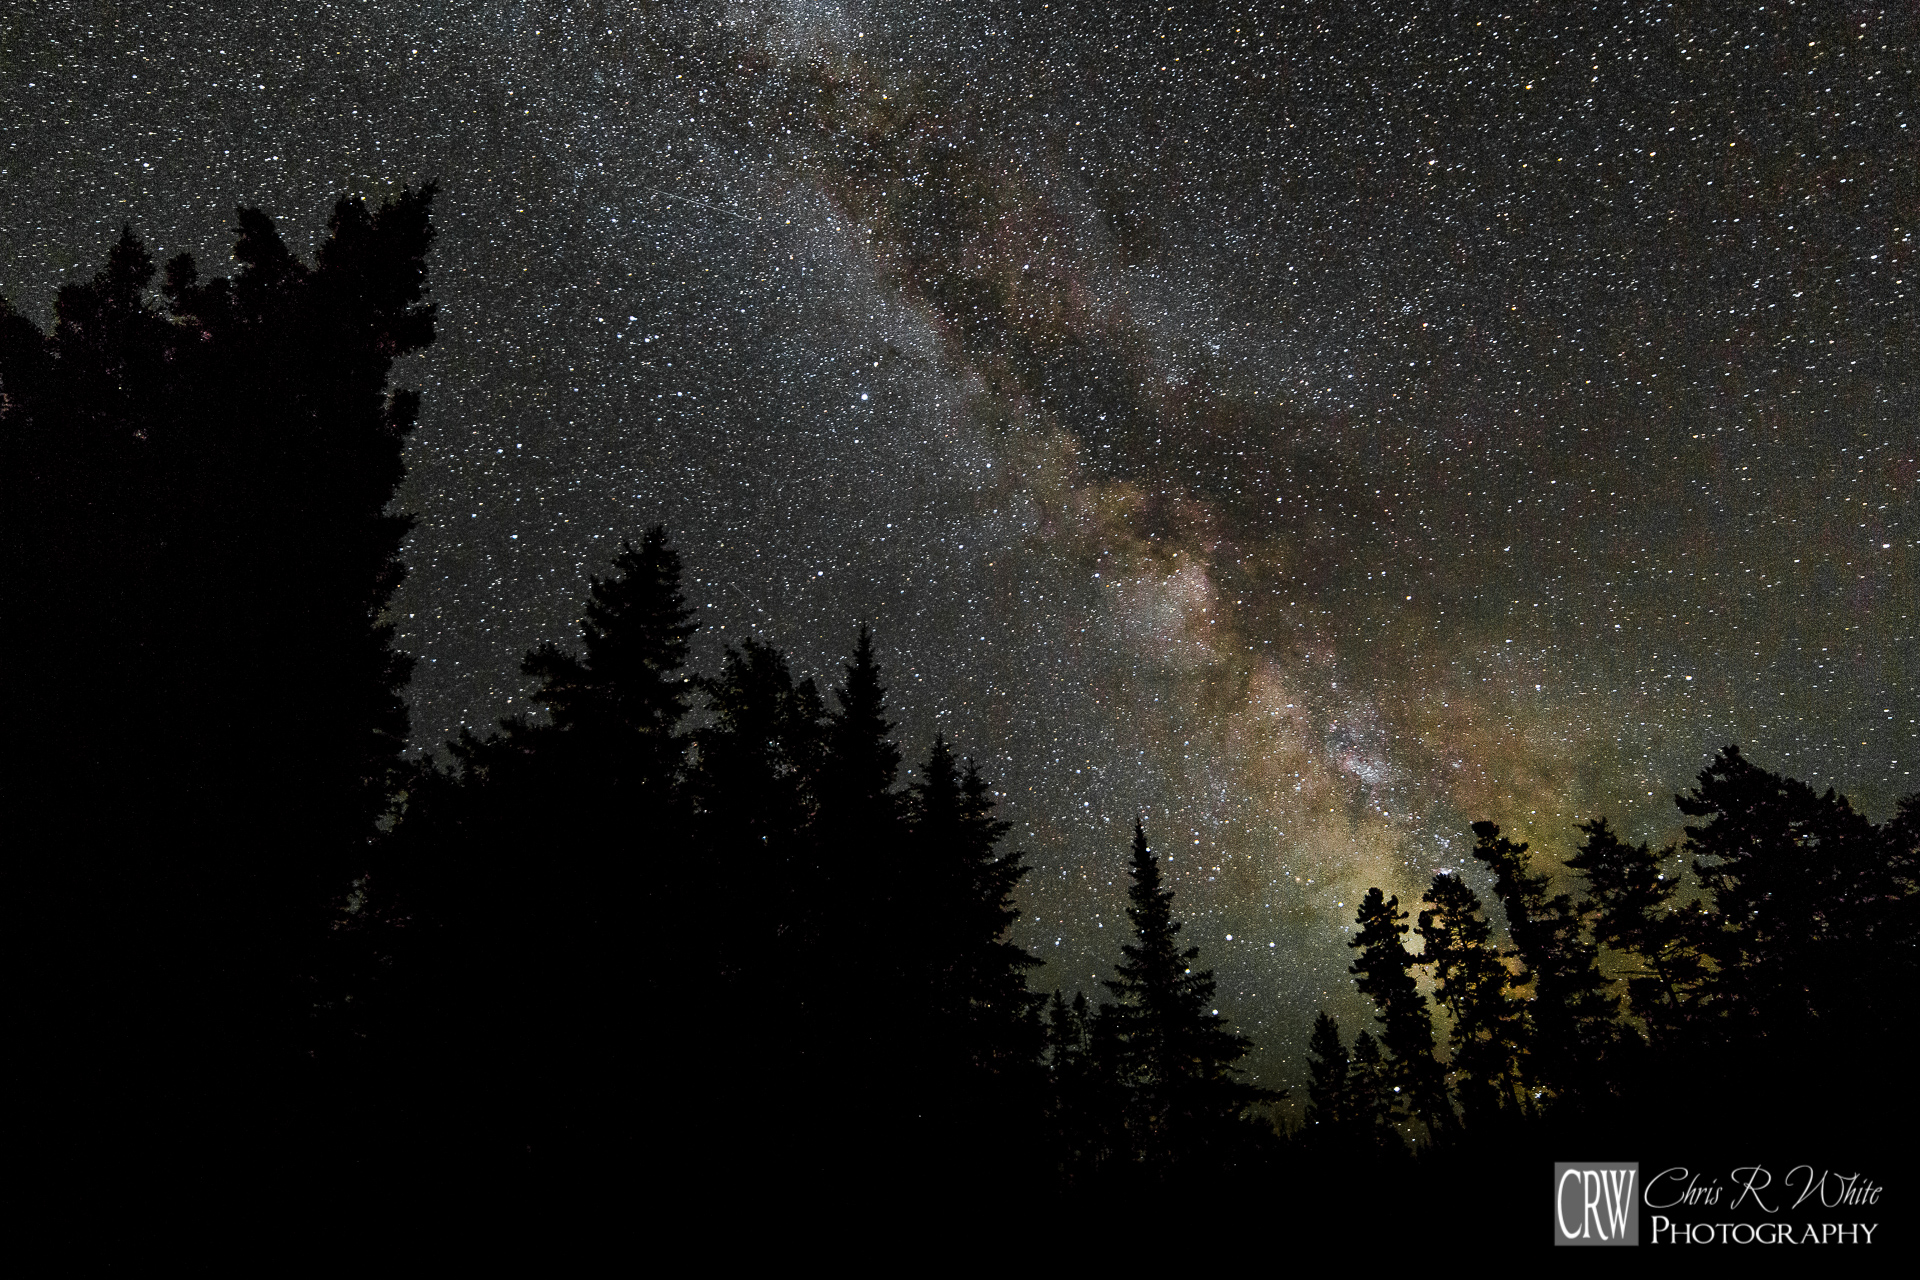 The Milky Way towers above the Boreal Forest of the North Maine Woods.